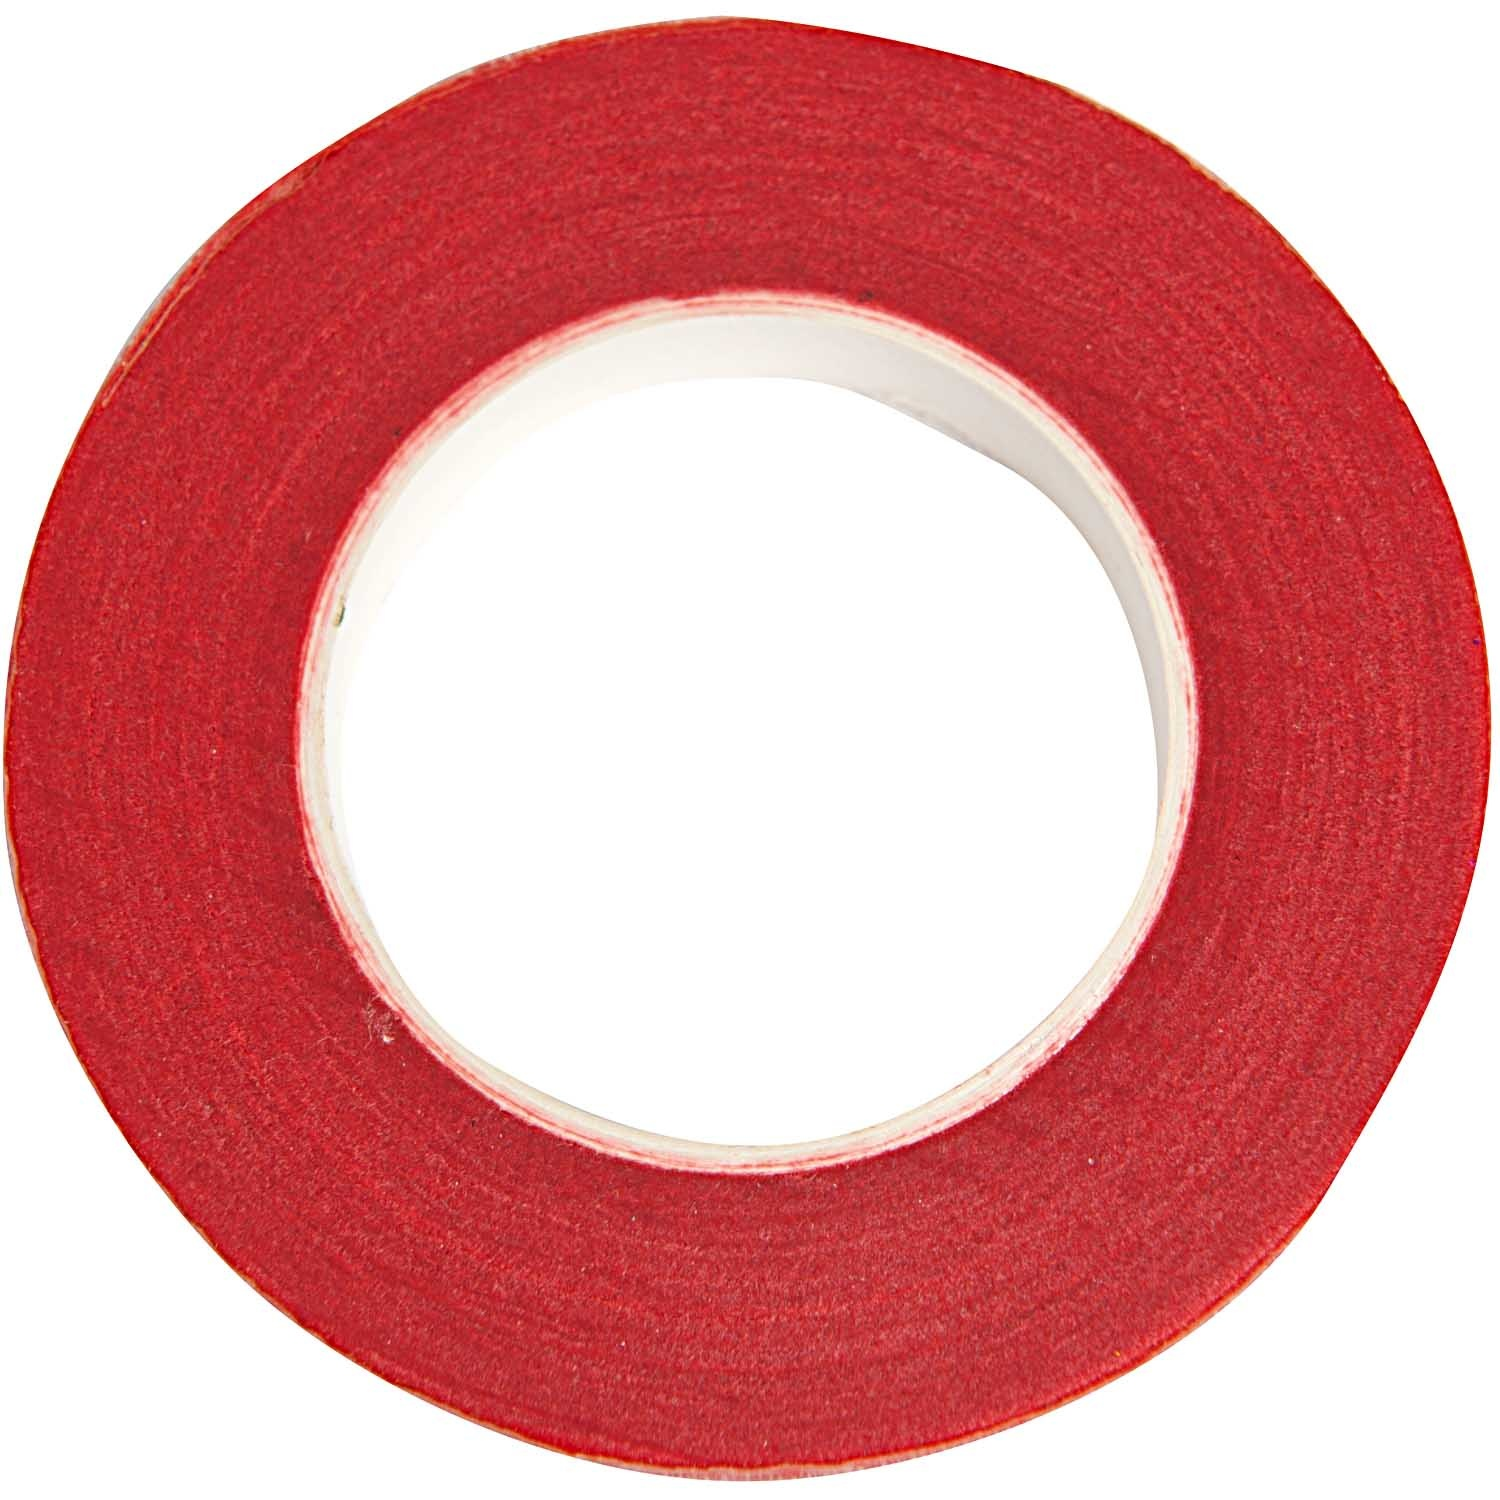 Rico NAY FLORAL CREPE TAPE, RED  12 MM X 27,5 M